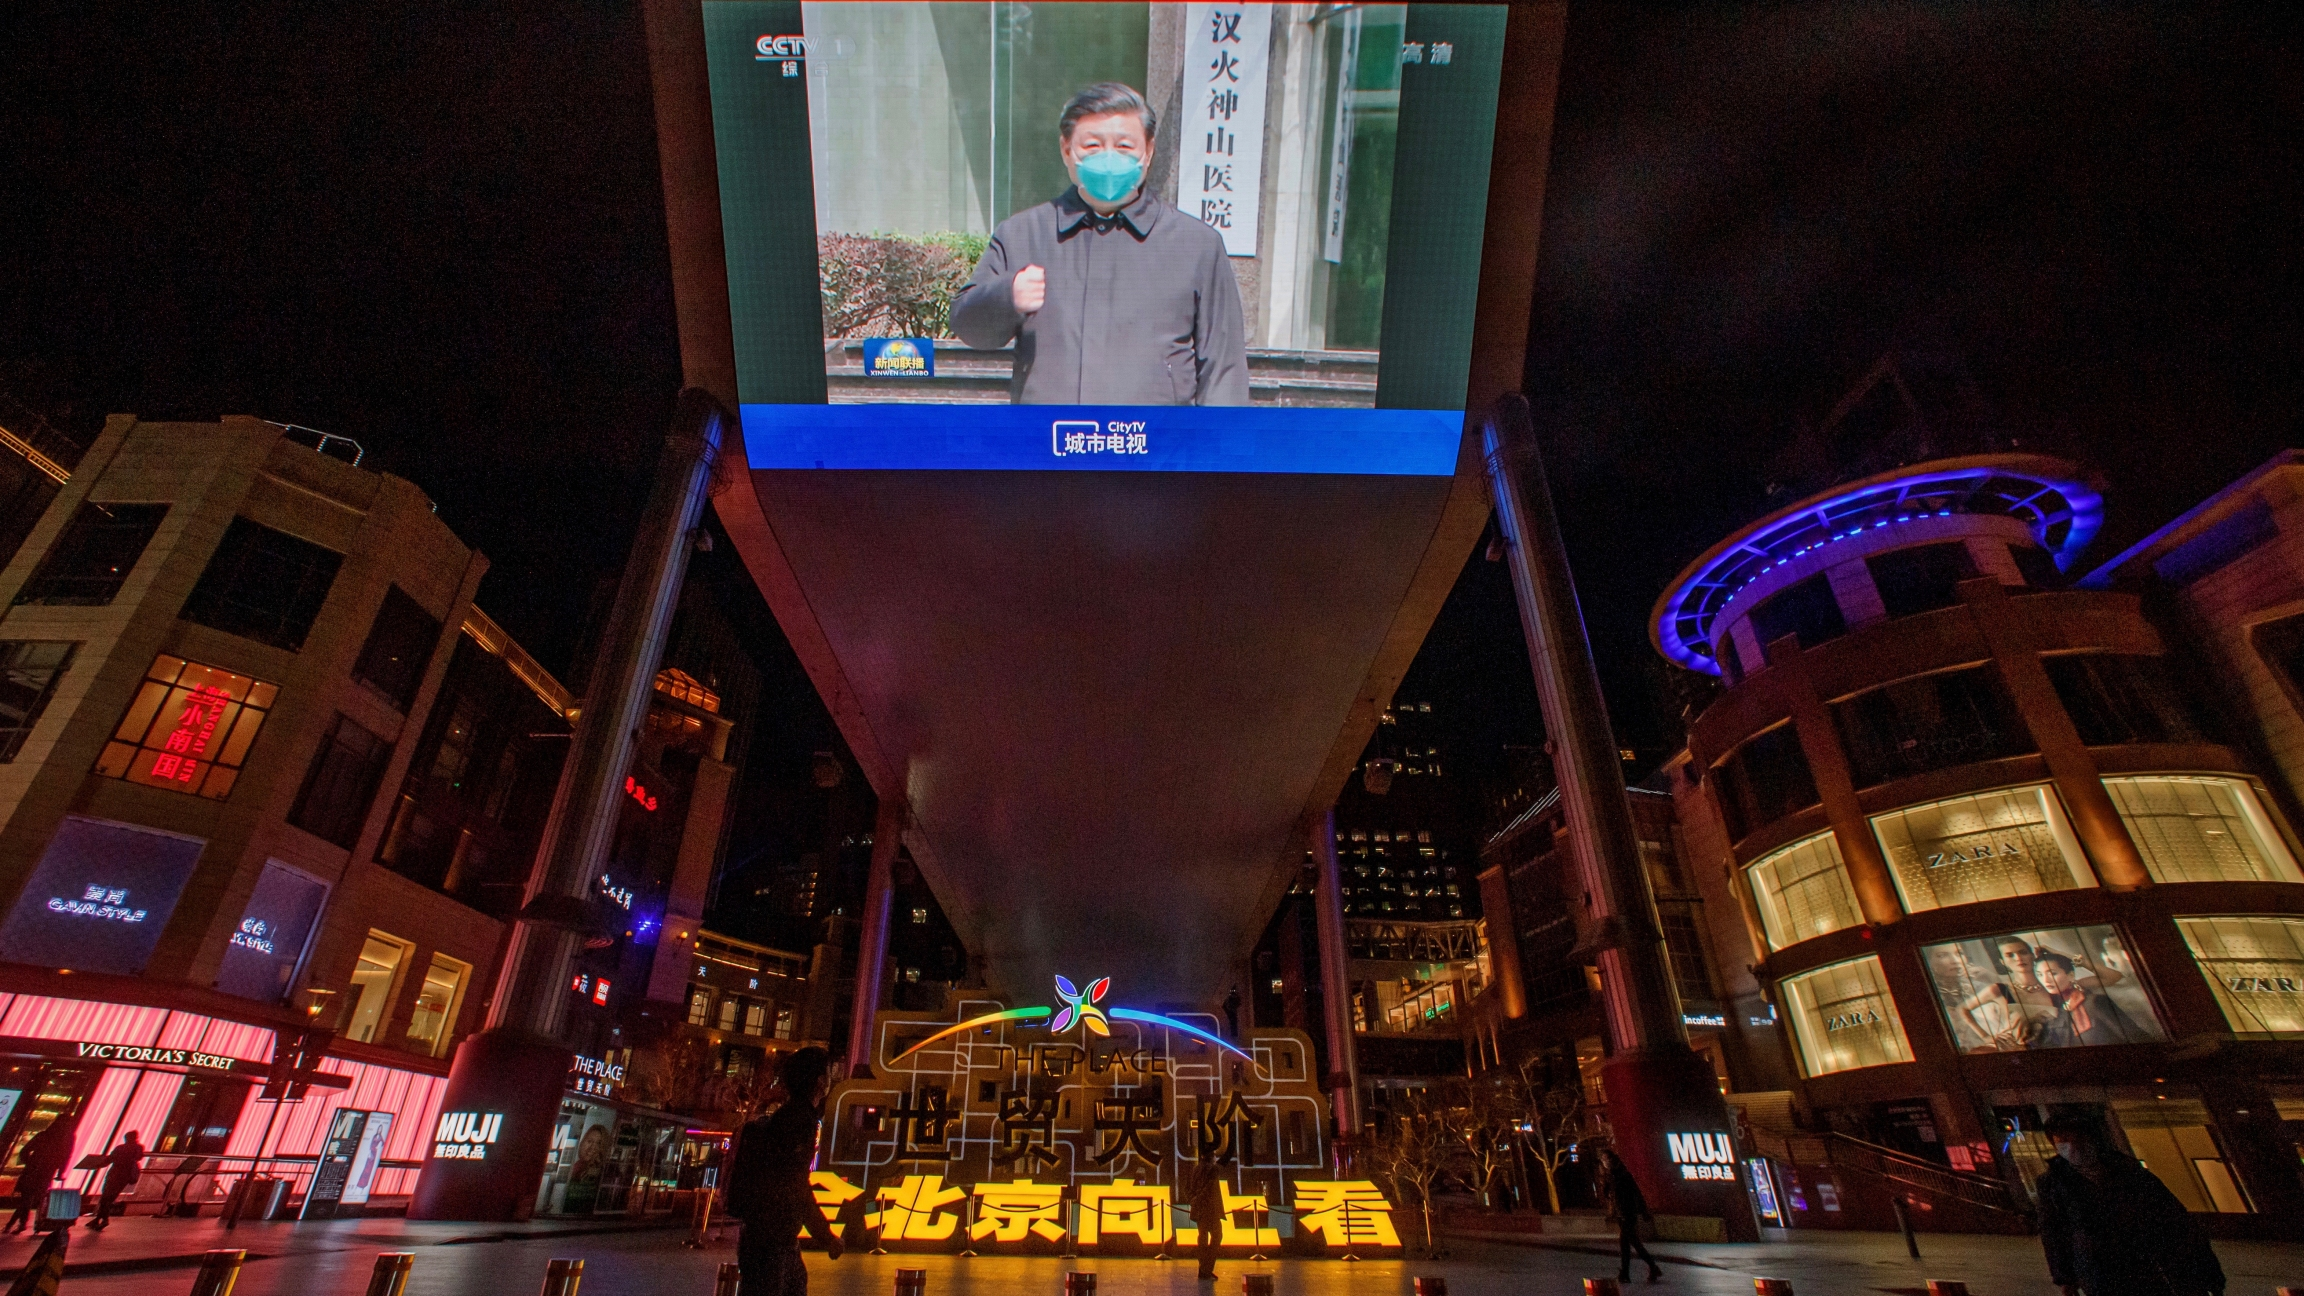 A screen shows a CCTV state media broadcast of Chinese President Xi Jinping's visit to Wuhan at a shopping centre in Beijing as the country is hit by the outbreak of the novel coronavirus, China, March 10, 2020.